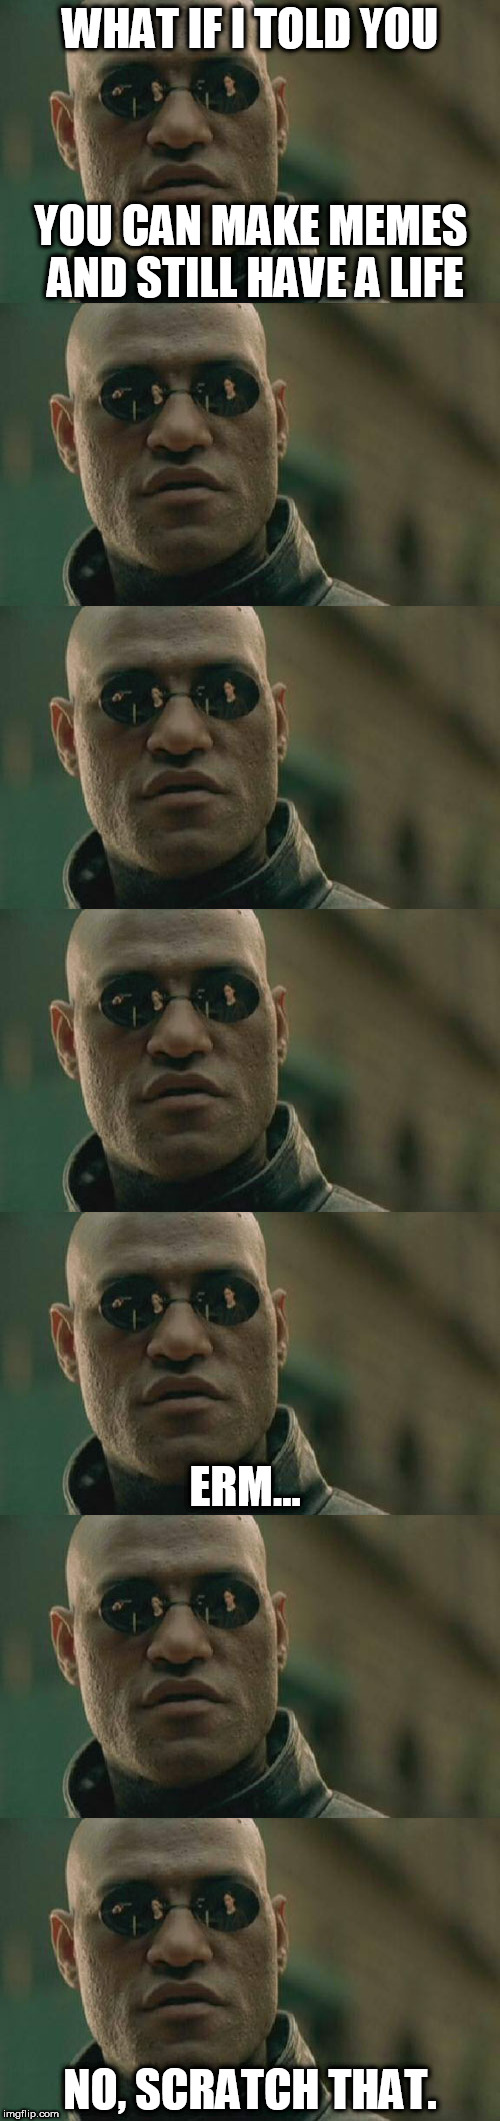 What if i told you.... | WHAT IF I TOLD YOU NO, SCRATCH THAT. YOU CAN MAKE MEMES AND STILL HAVE A LIFE ERM... | image tagged in matrix morpheus,what if i told you,memes,funny memes,matrix,funny meme | made w/ Imgflip meme maker